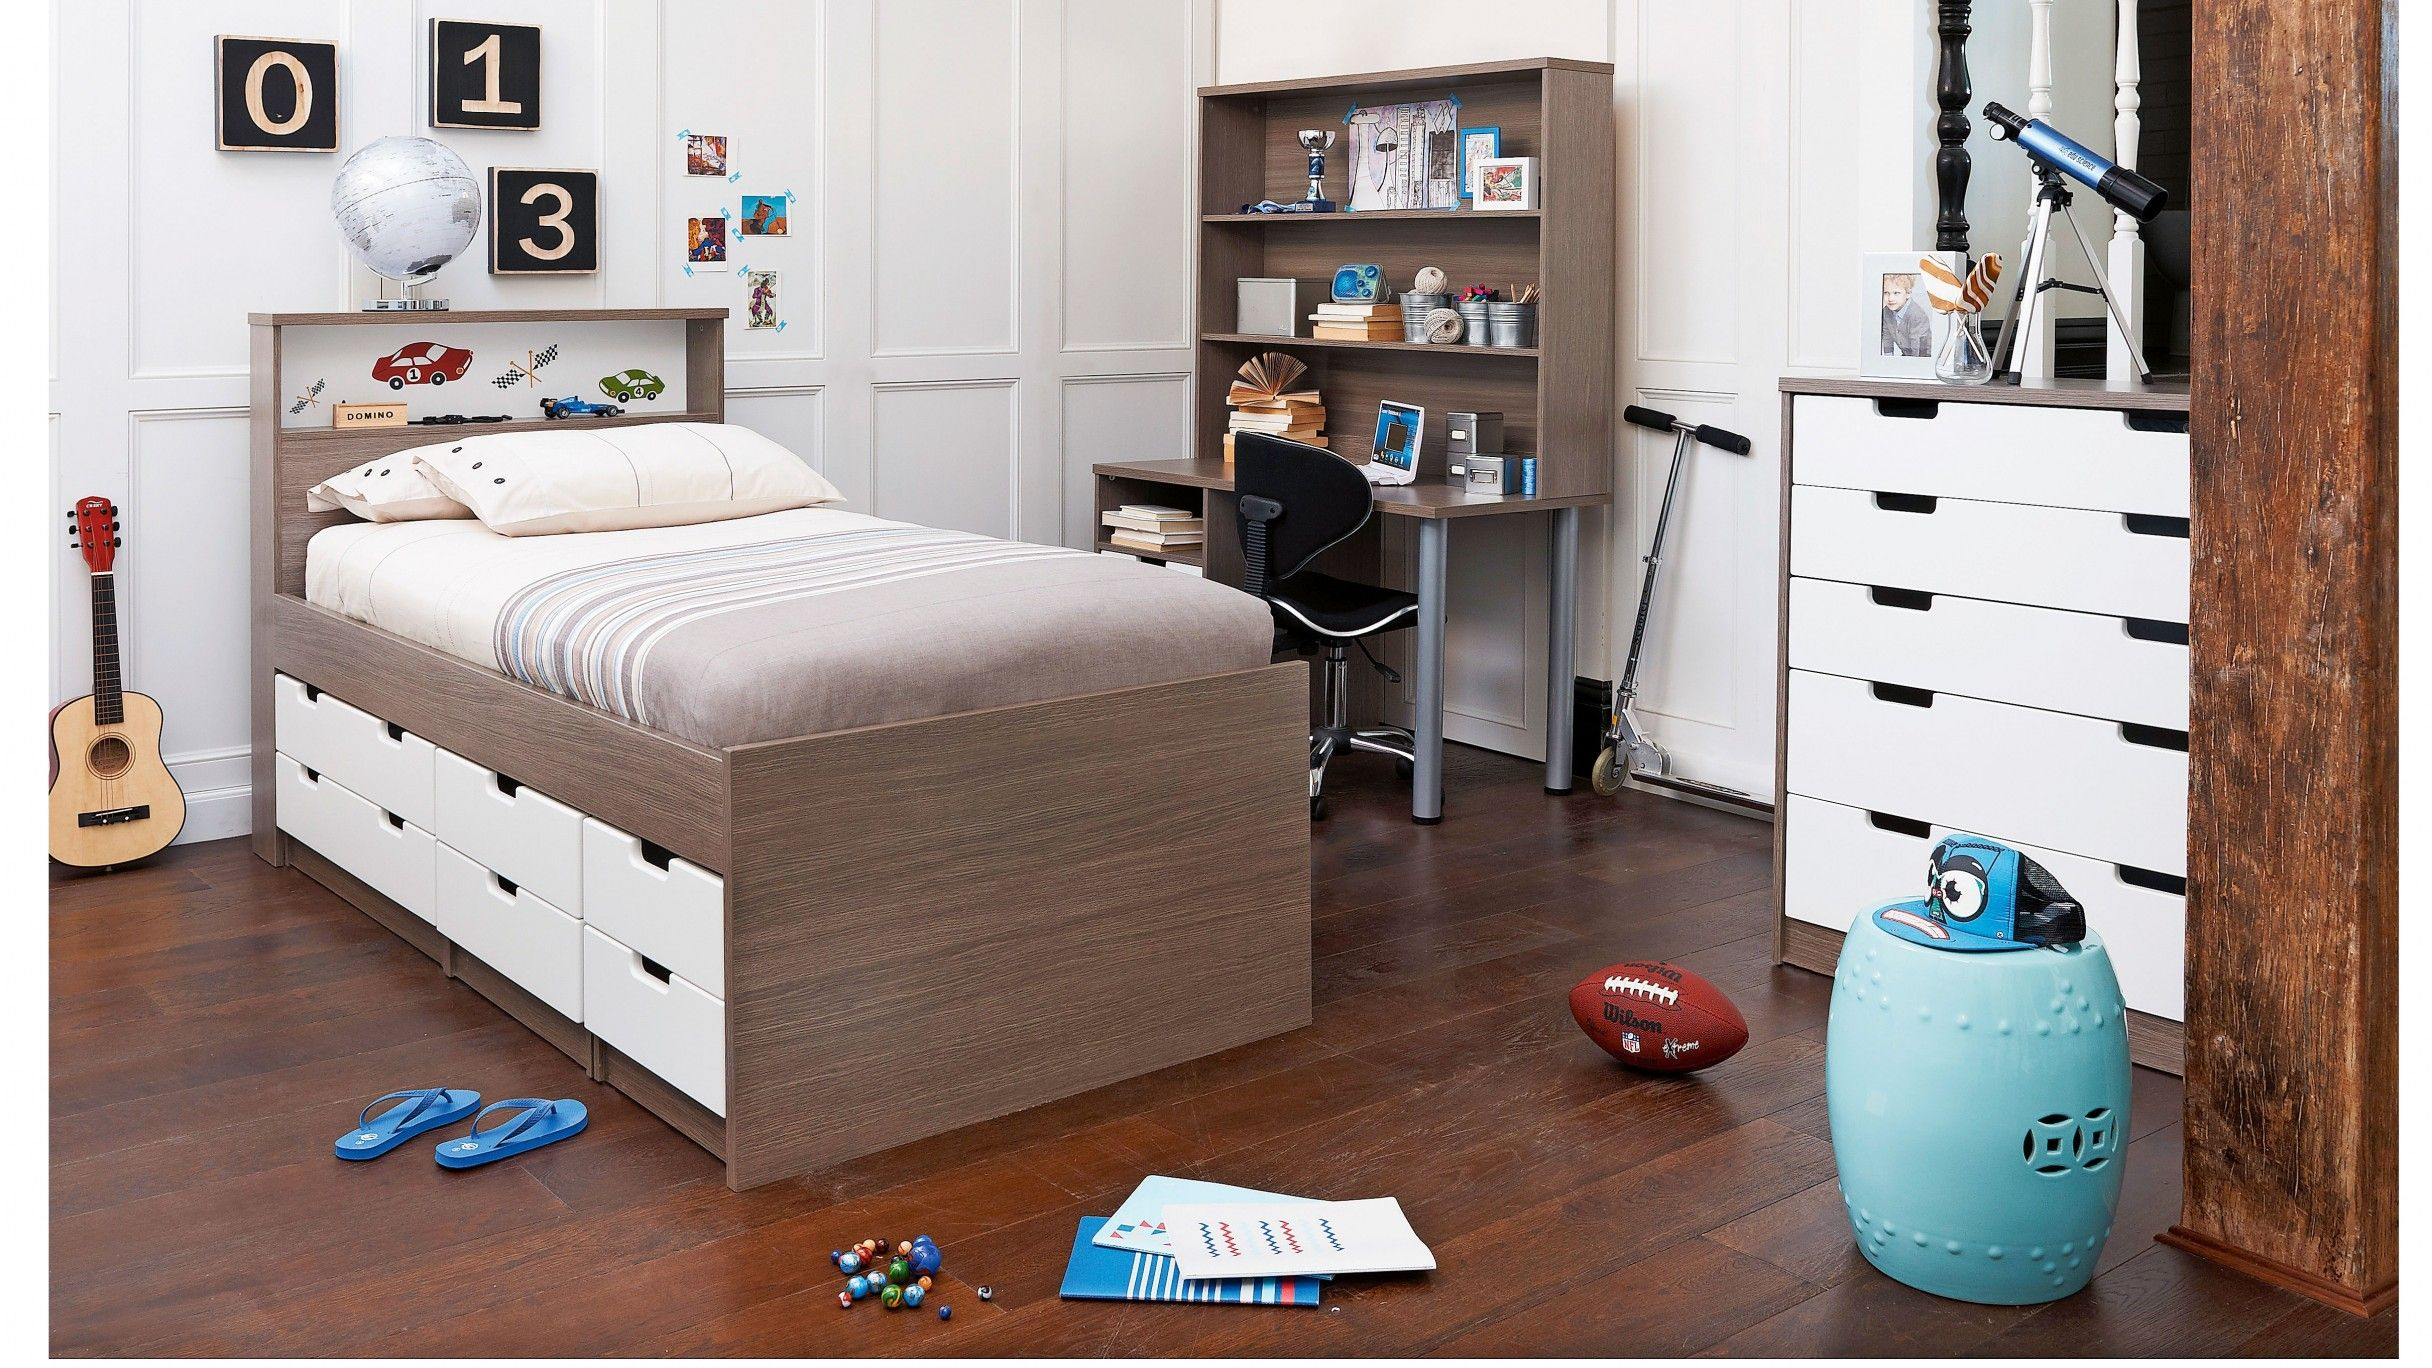 Domino ii single bed complete harvey norman storage - Childrens bedroom furniture with storage ...